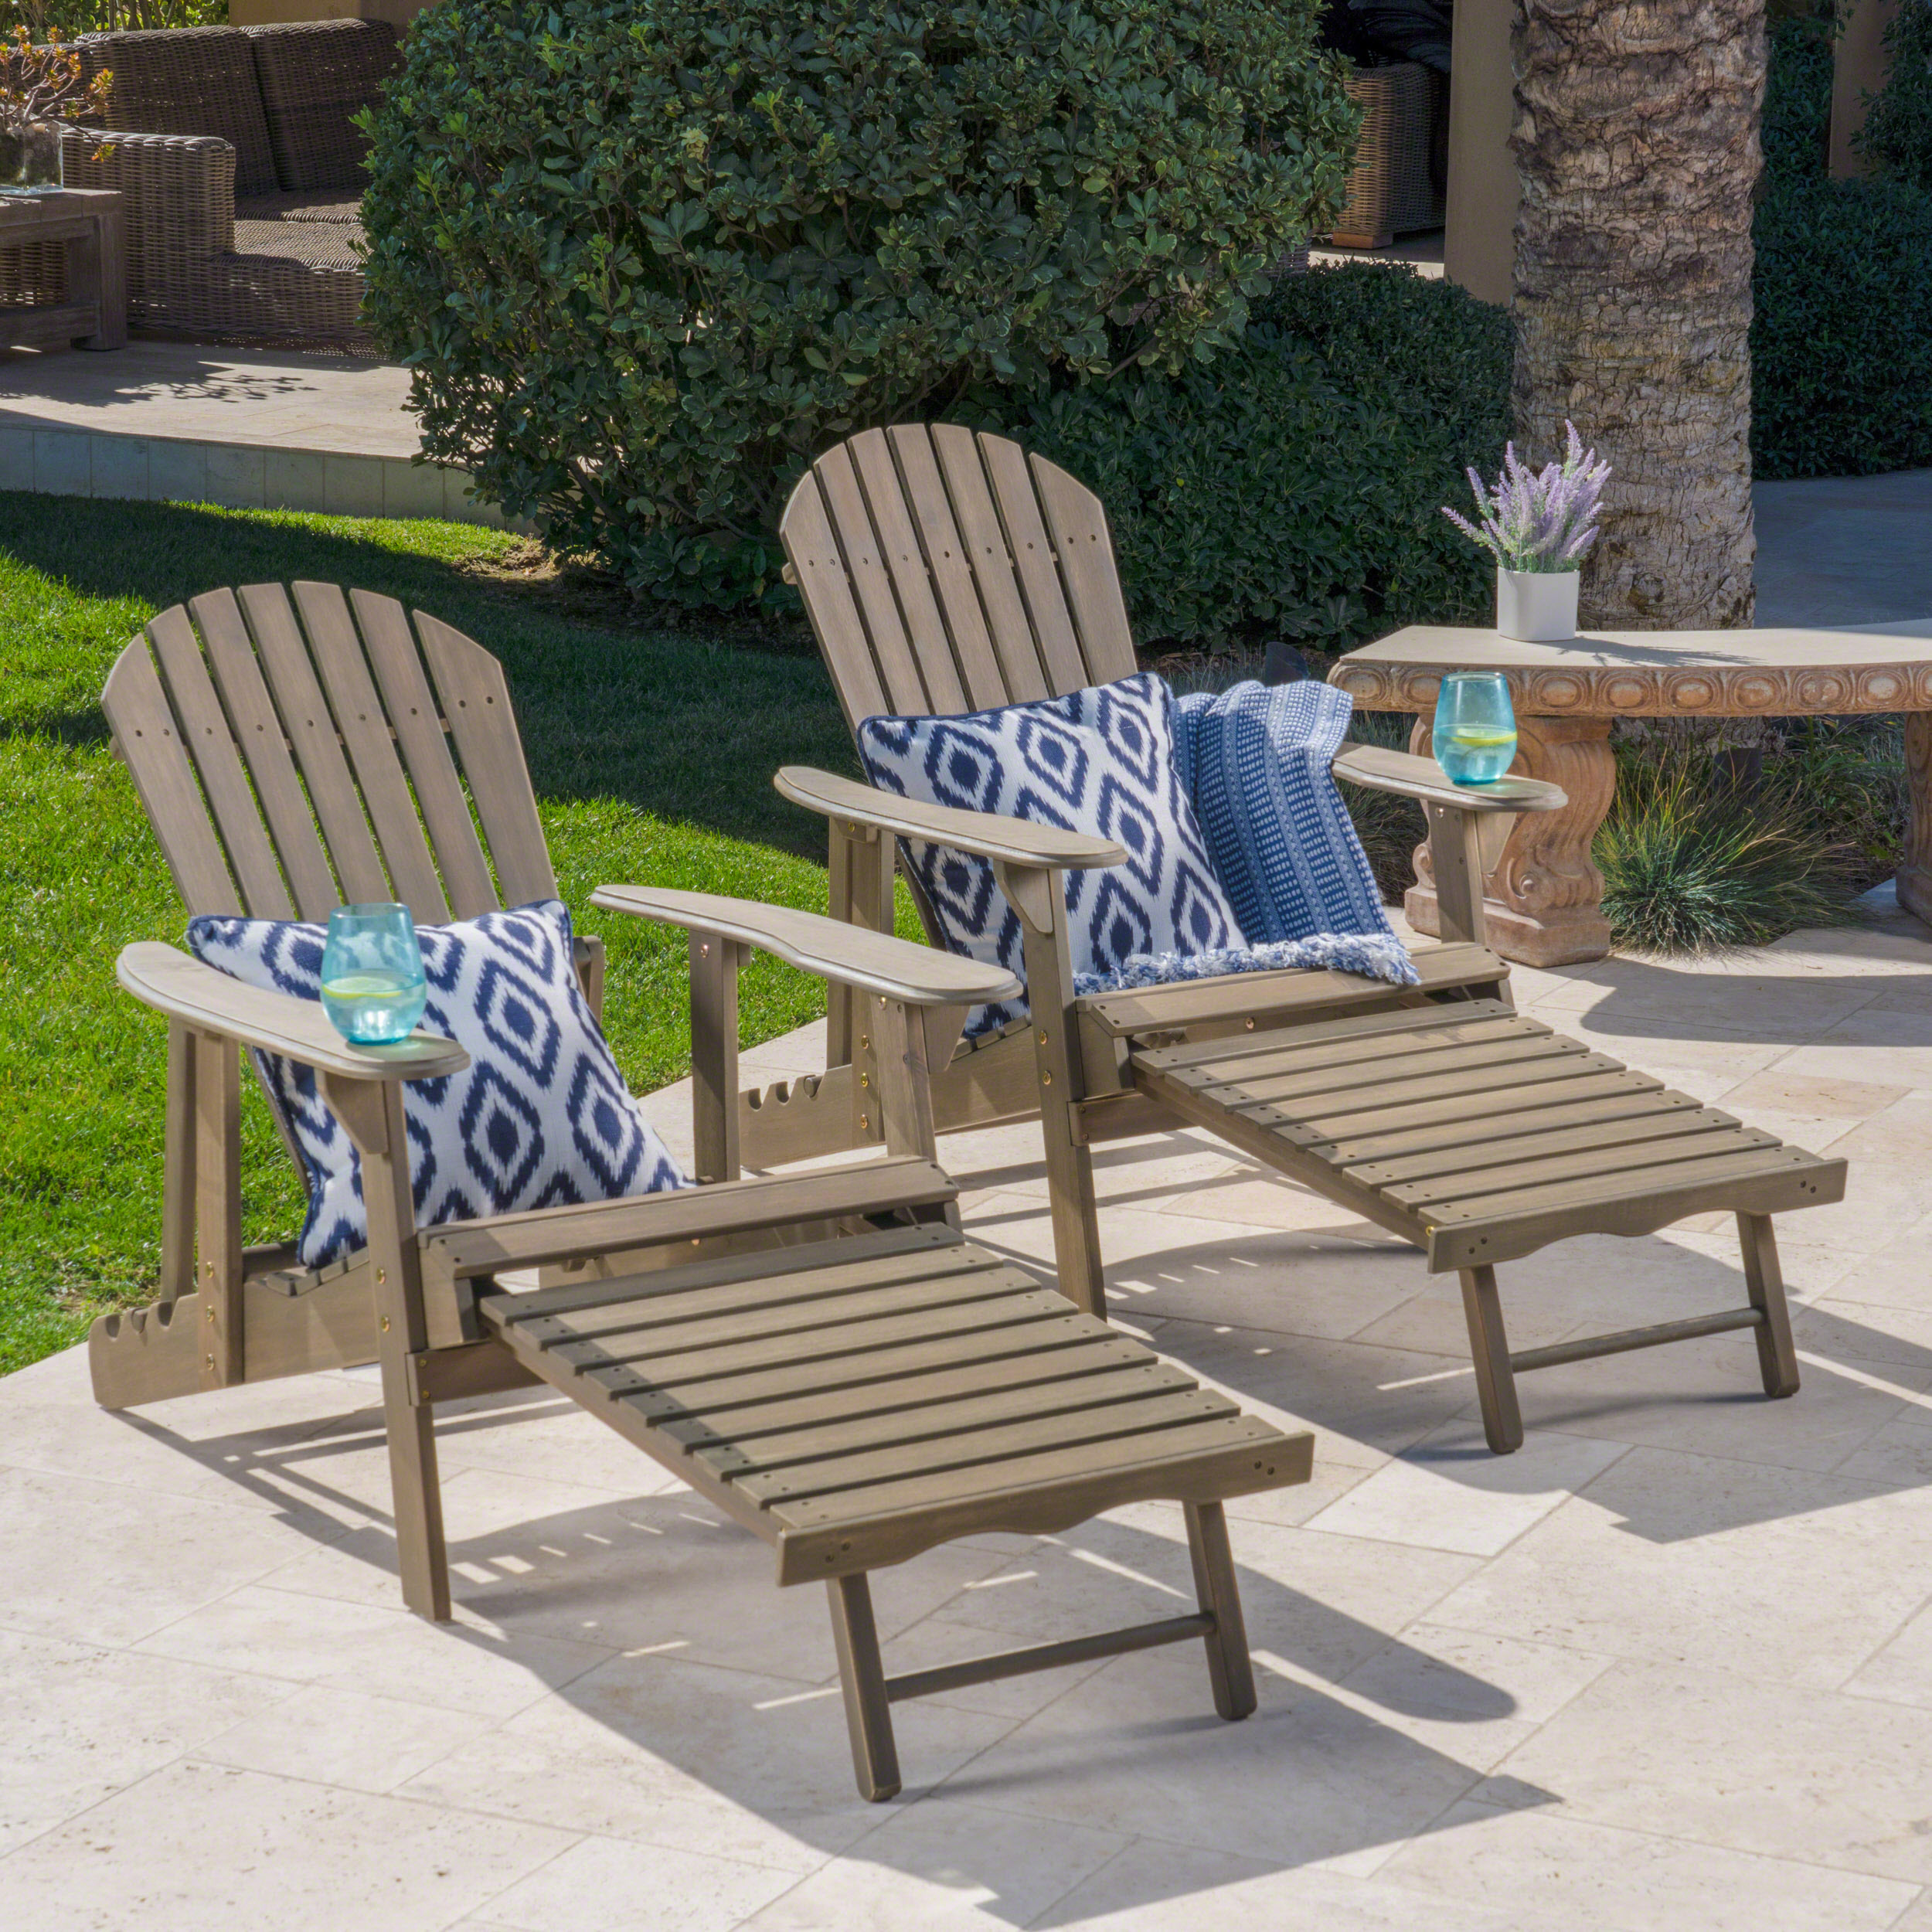 Munoz Reclining Wood Adirondack Chair With Footrest, Set Of 2, Grey